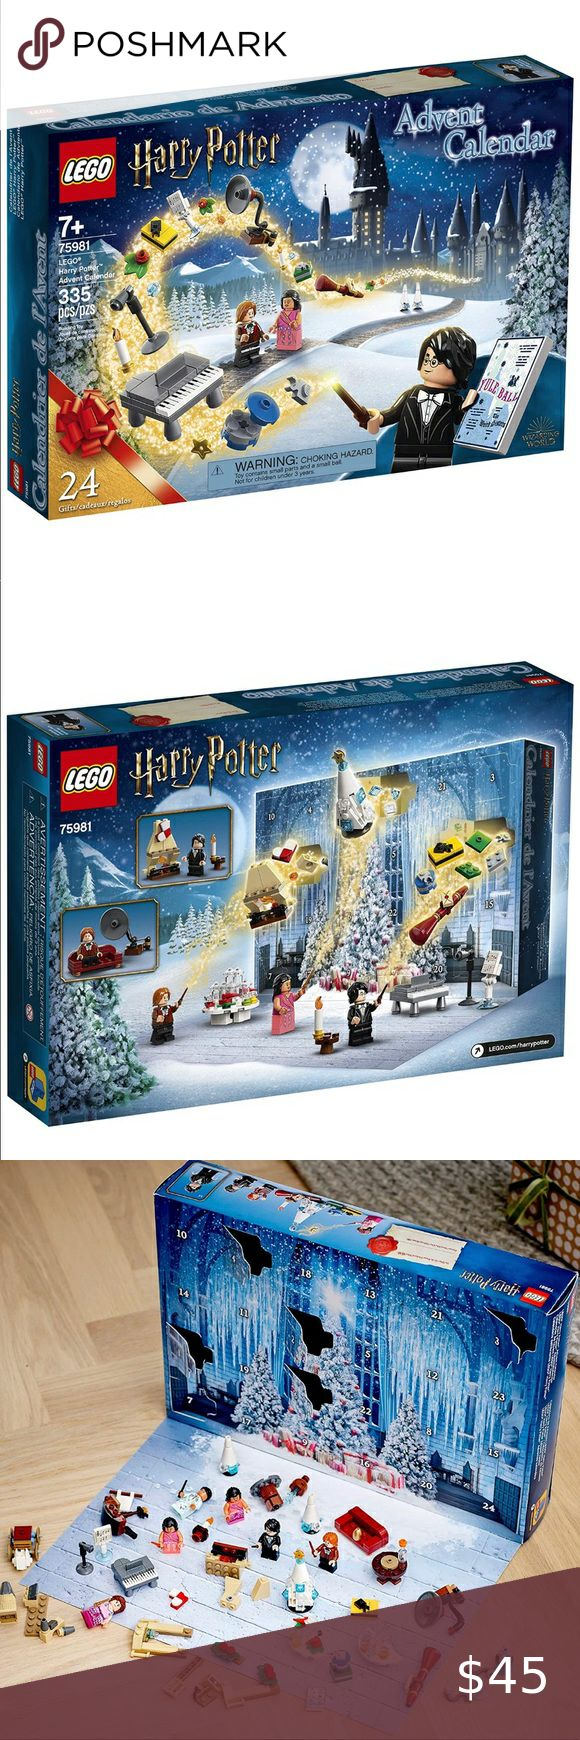 New 2020 Great Christmas or Birthday Calendar Gift Collectible Toys from The Hogwarts Yule Ball 335 Pieces Harry Potter and The Goblet of Fire and More LEGO Harry Potter Advent Calendar 75981